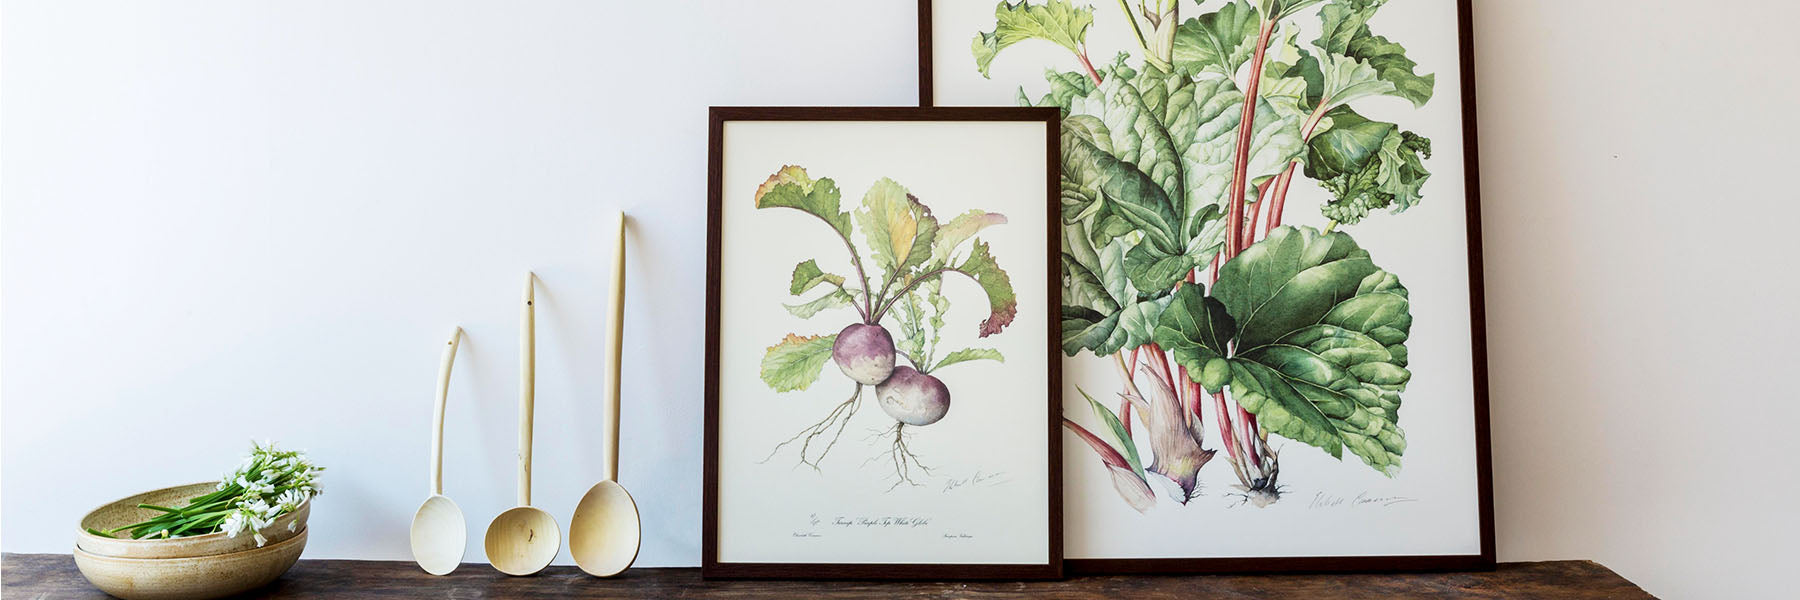 Elizabeth Cameron prints vegetables art